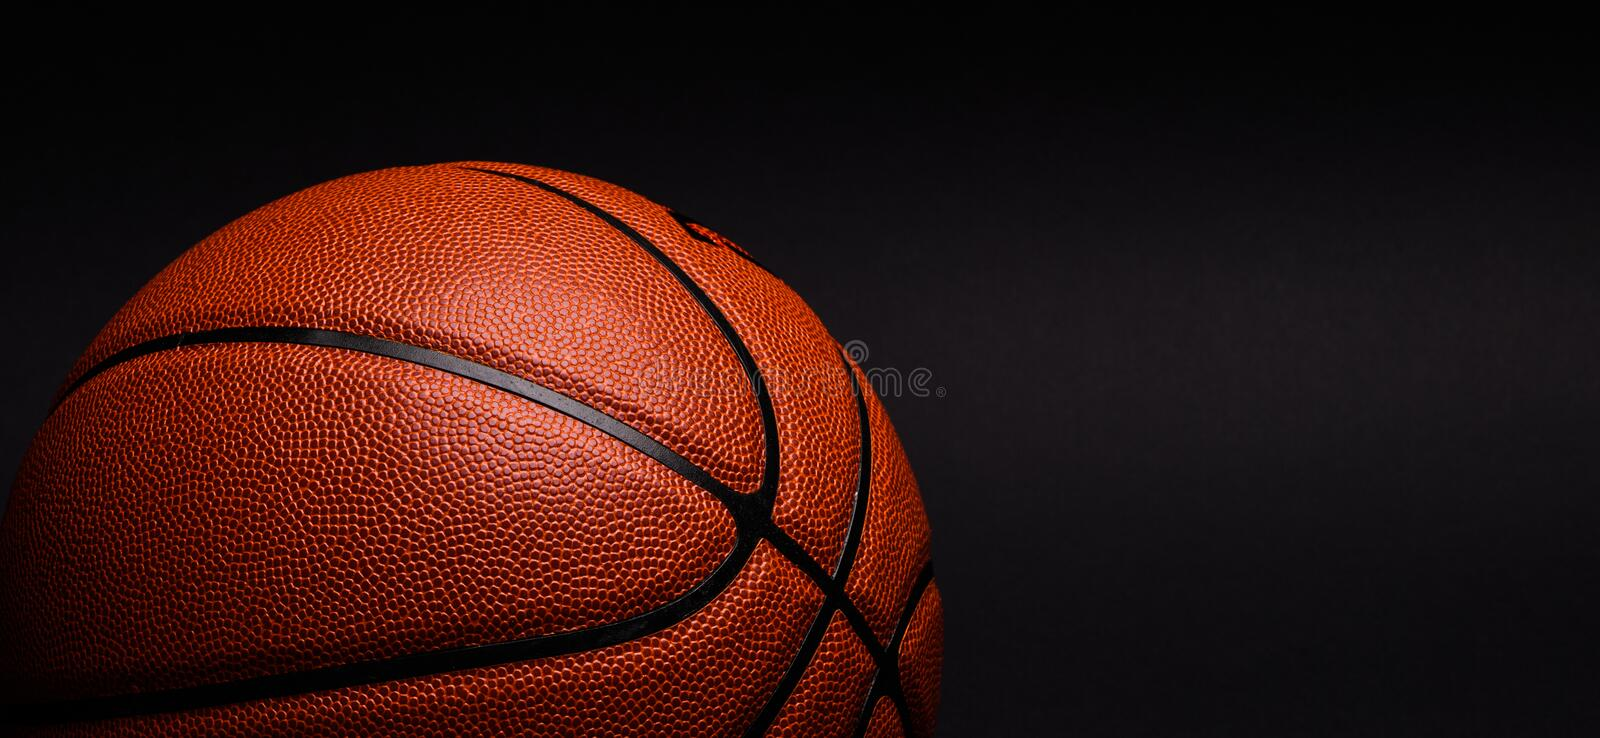 Basketball ball on black background. Game, dark, leather, nba, shadow, sport, texture royalty free stock images